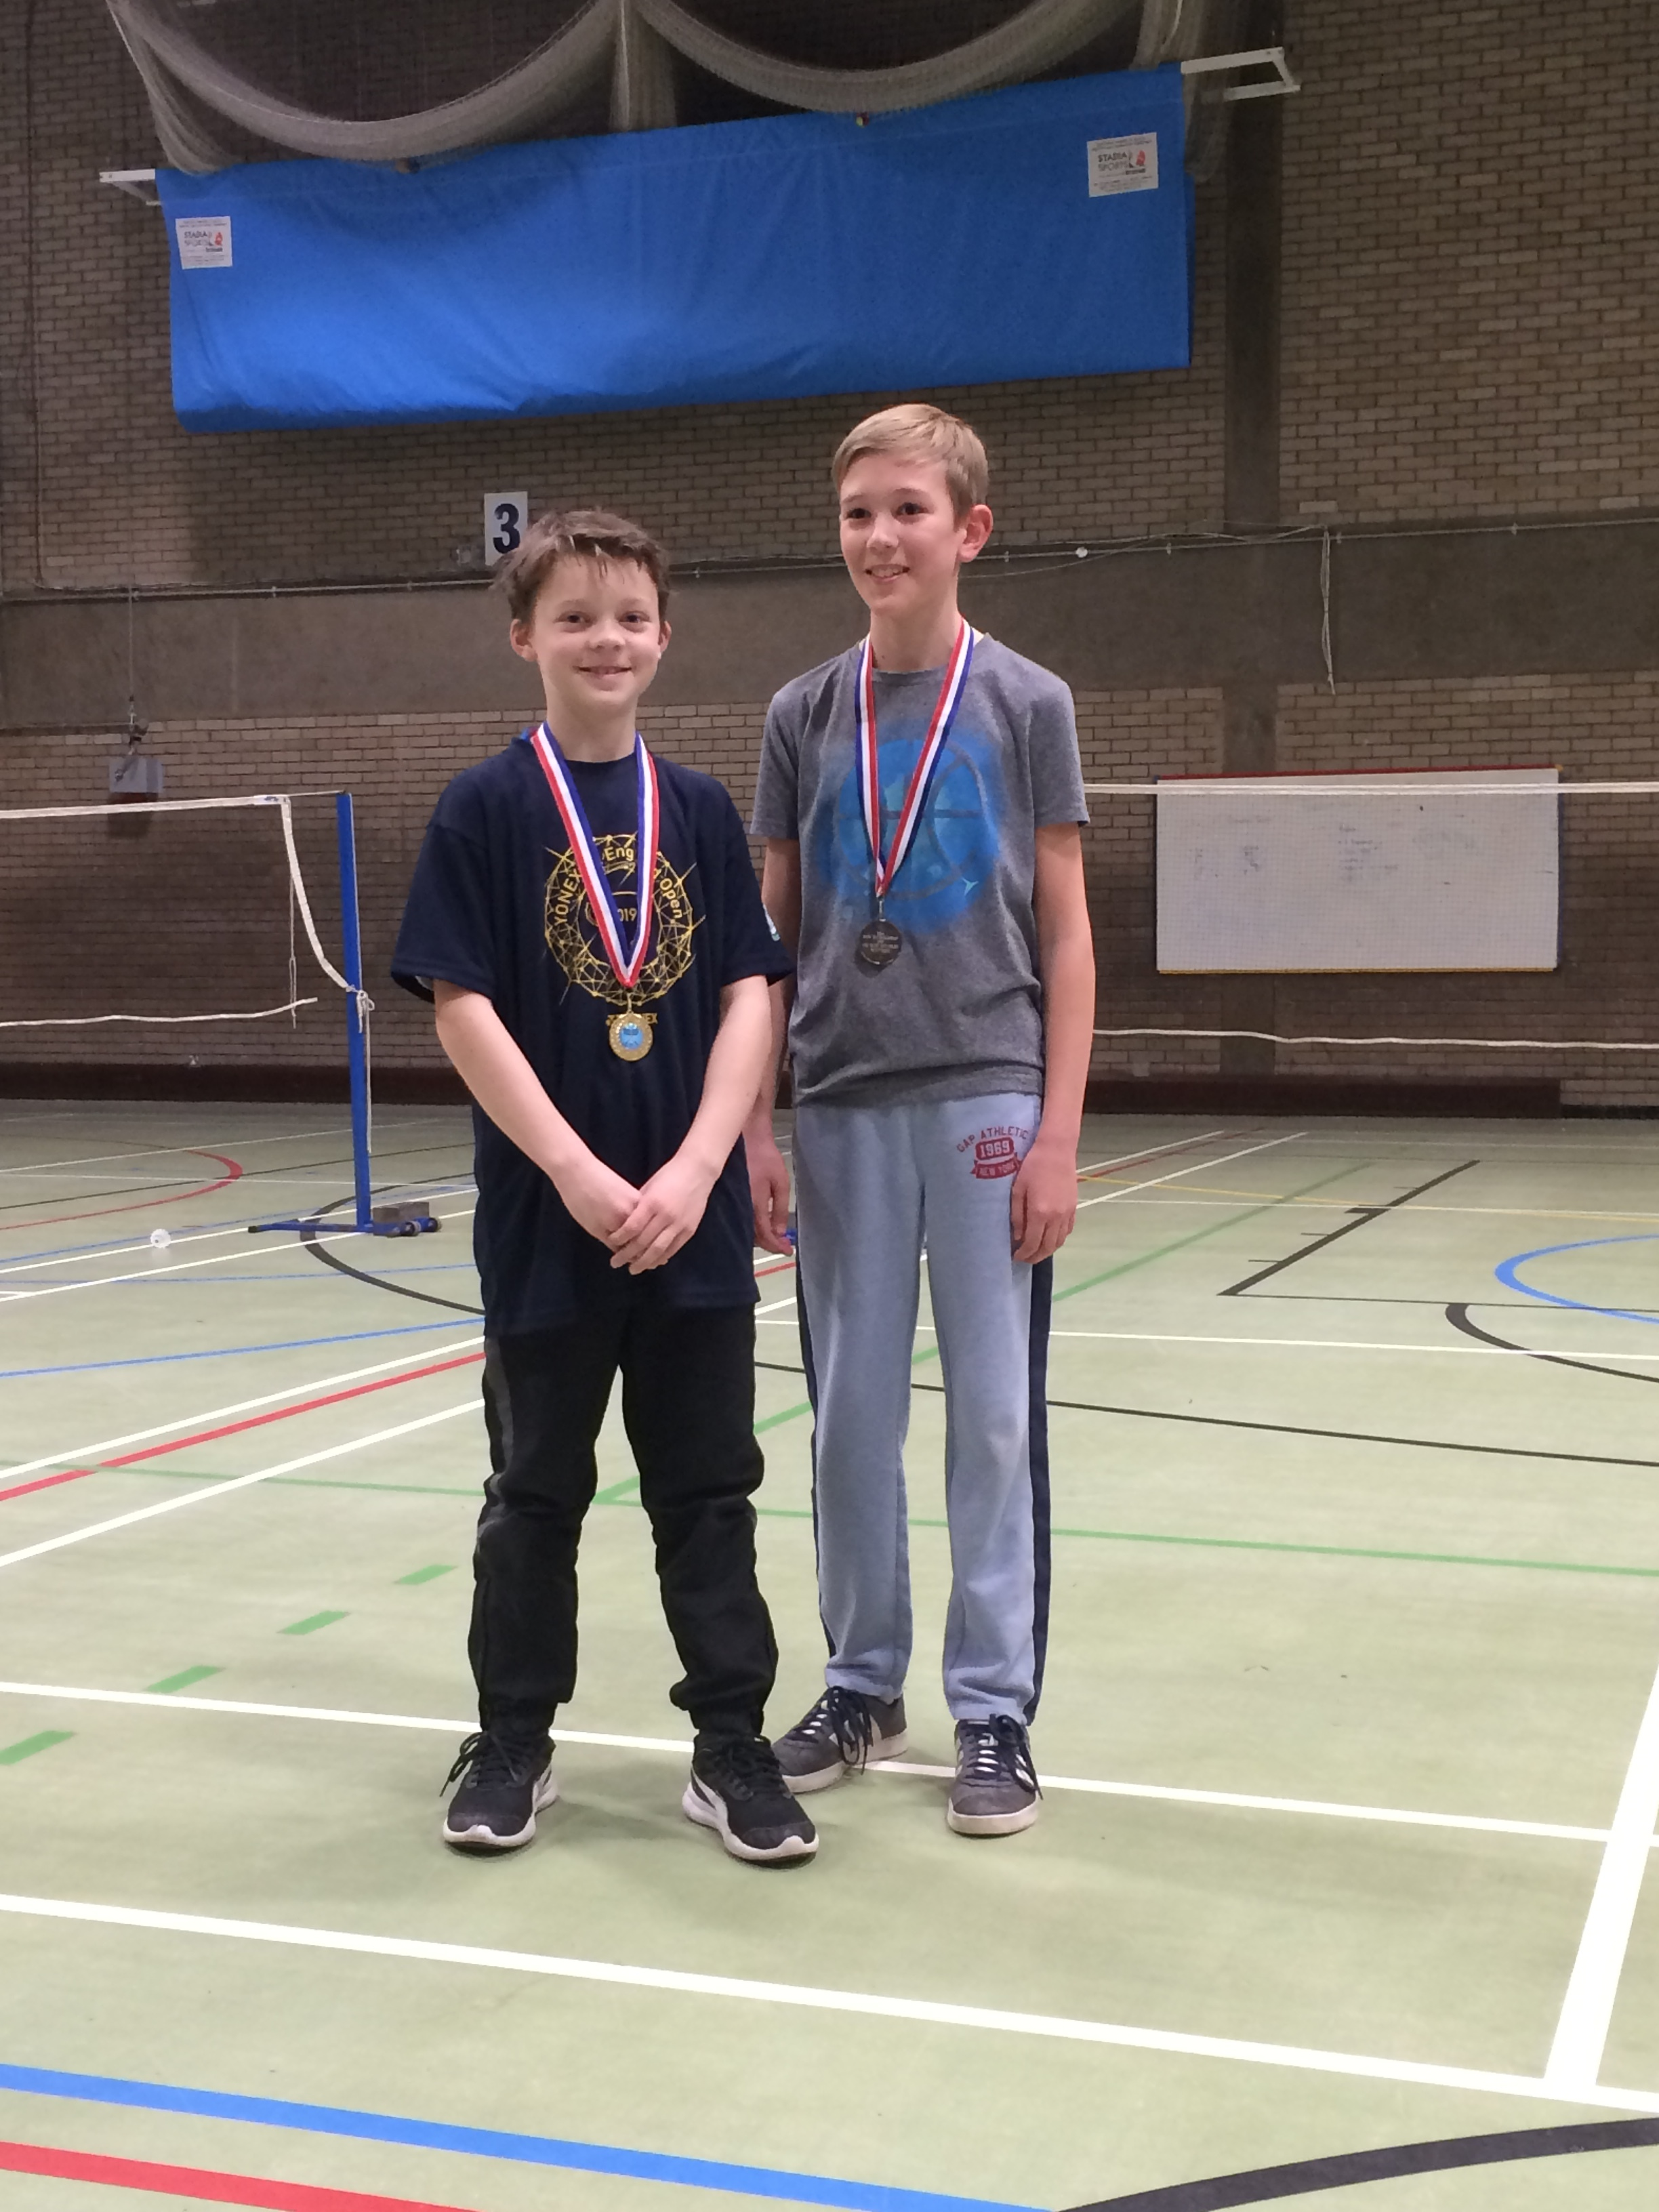 U11 boys doubles winners: Wylie Mead/Lucas Lowther